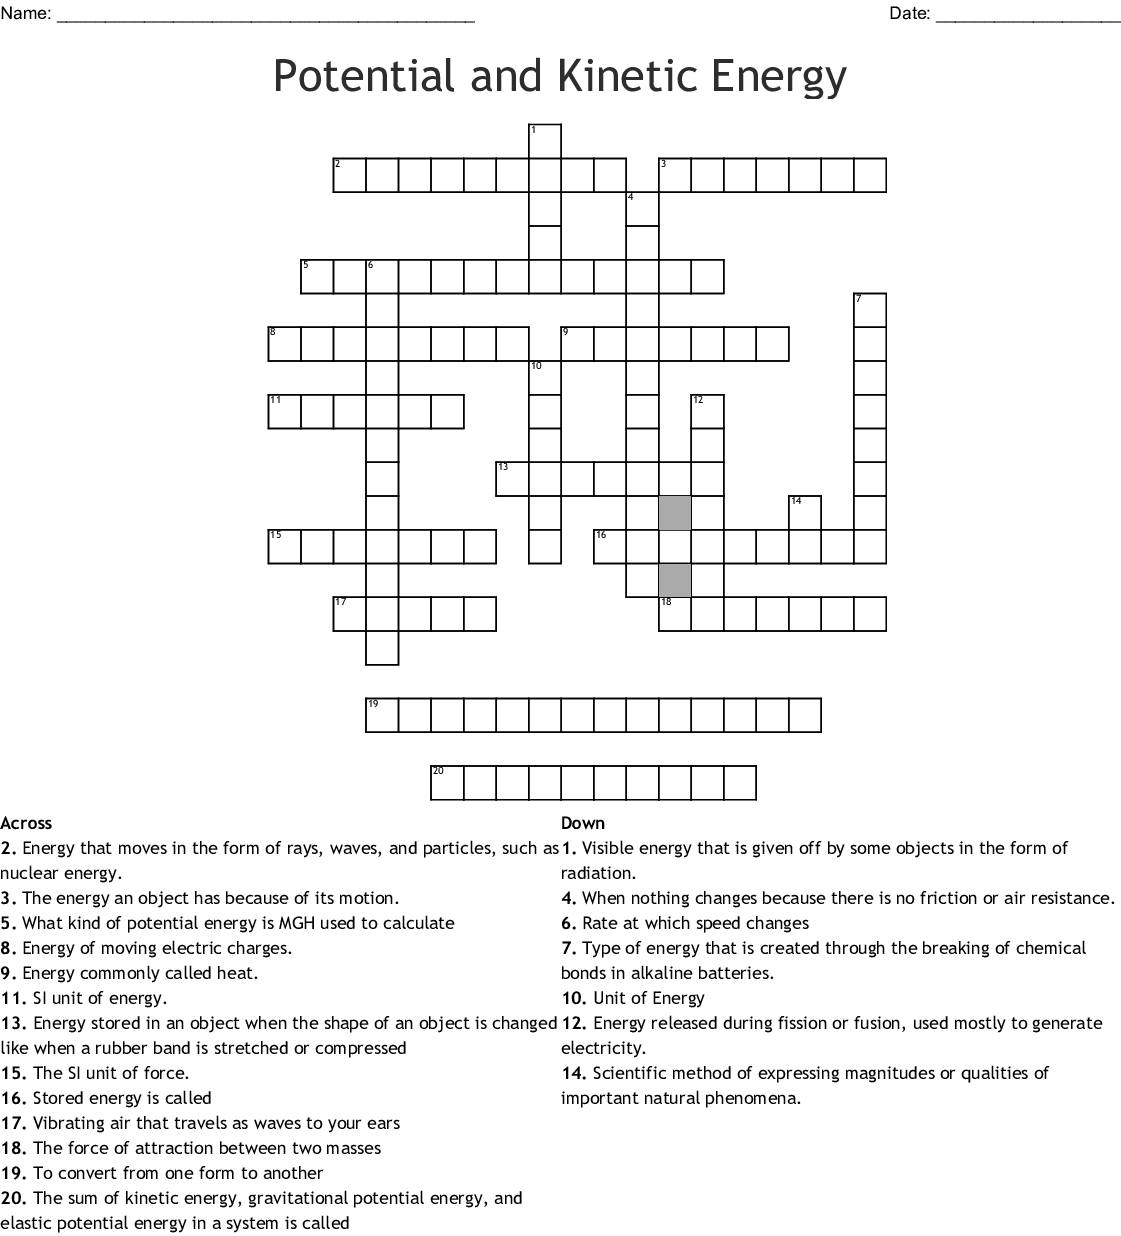 Potential And Kinetic Energy Crossword